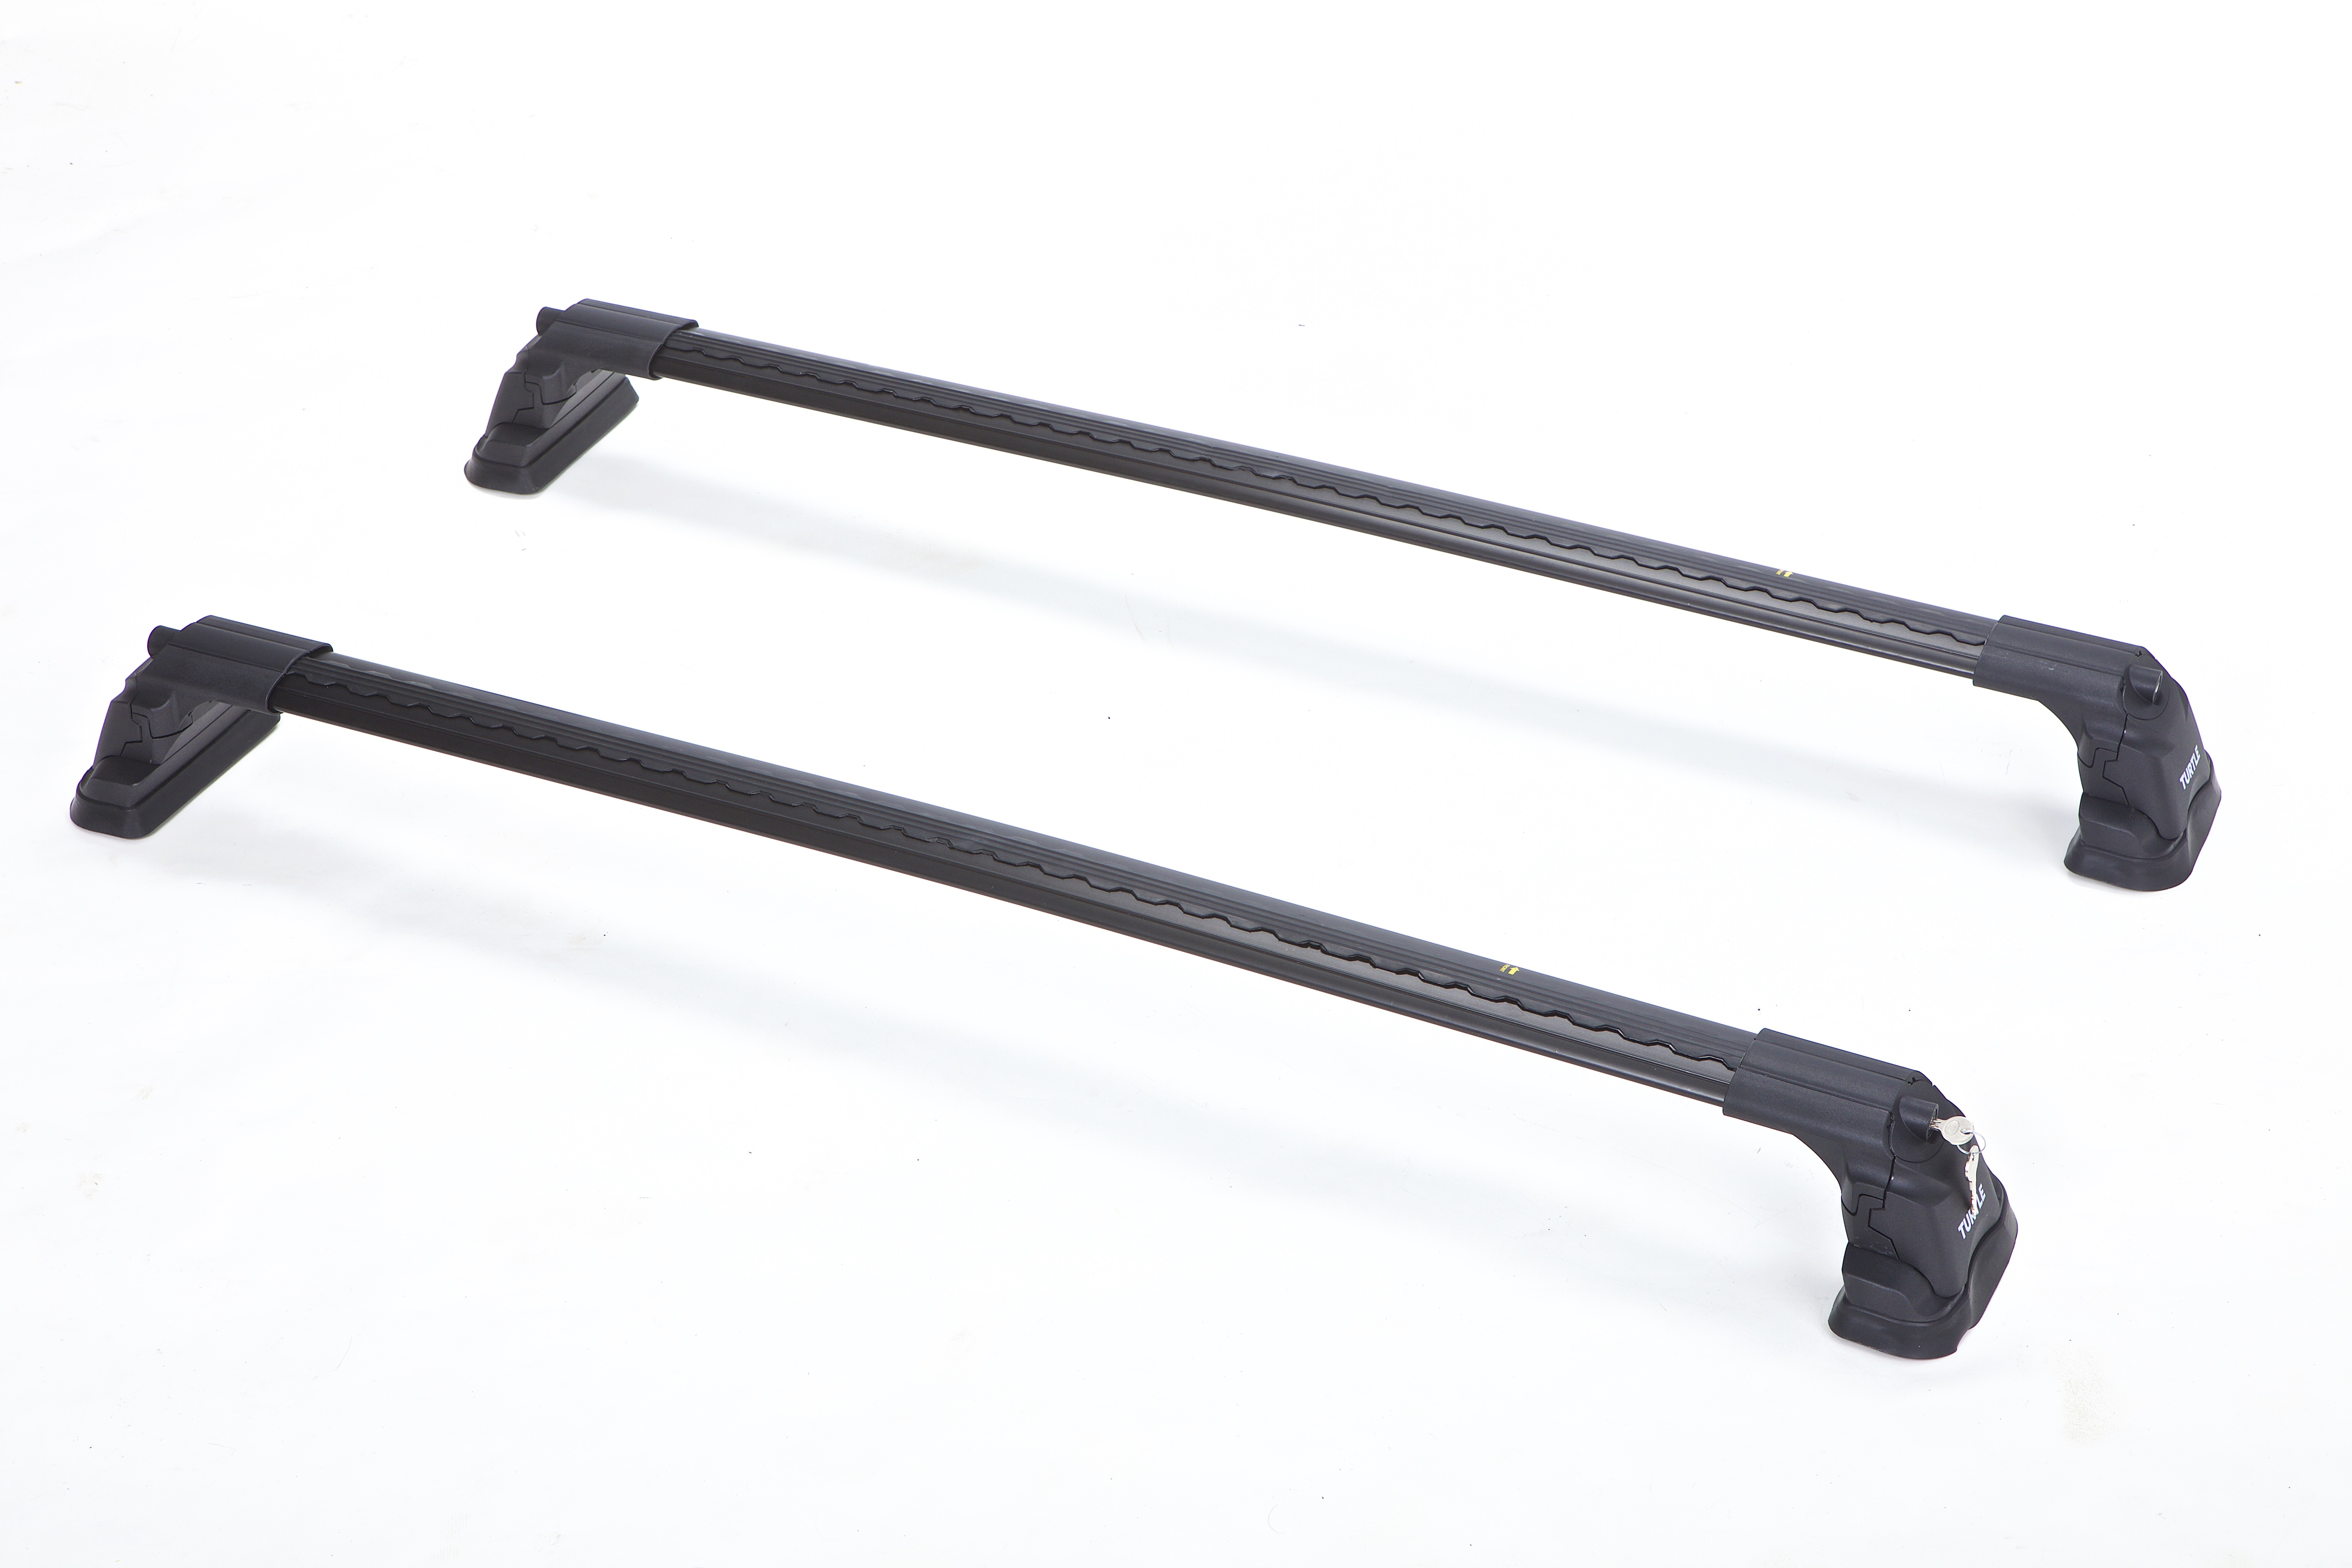 How to Choose the Best Roof Rack or Roof Bars for You